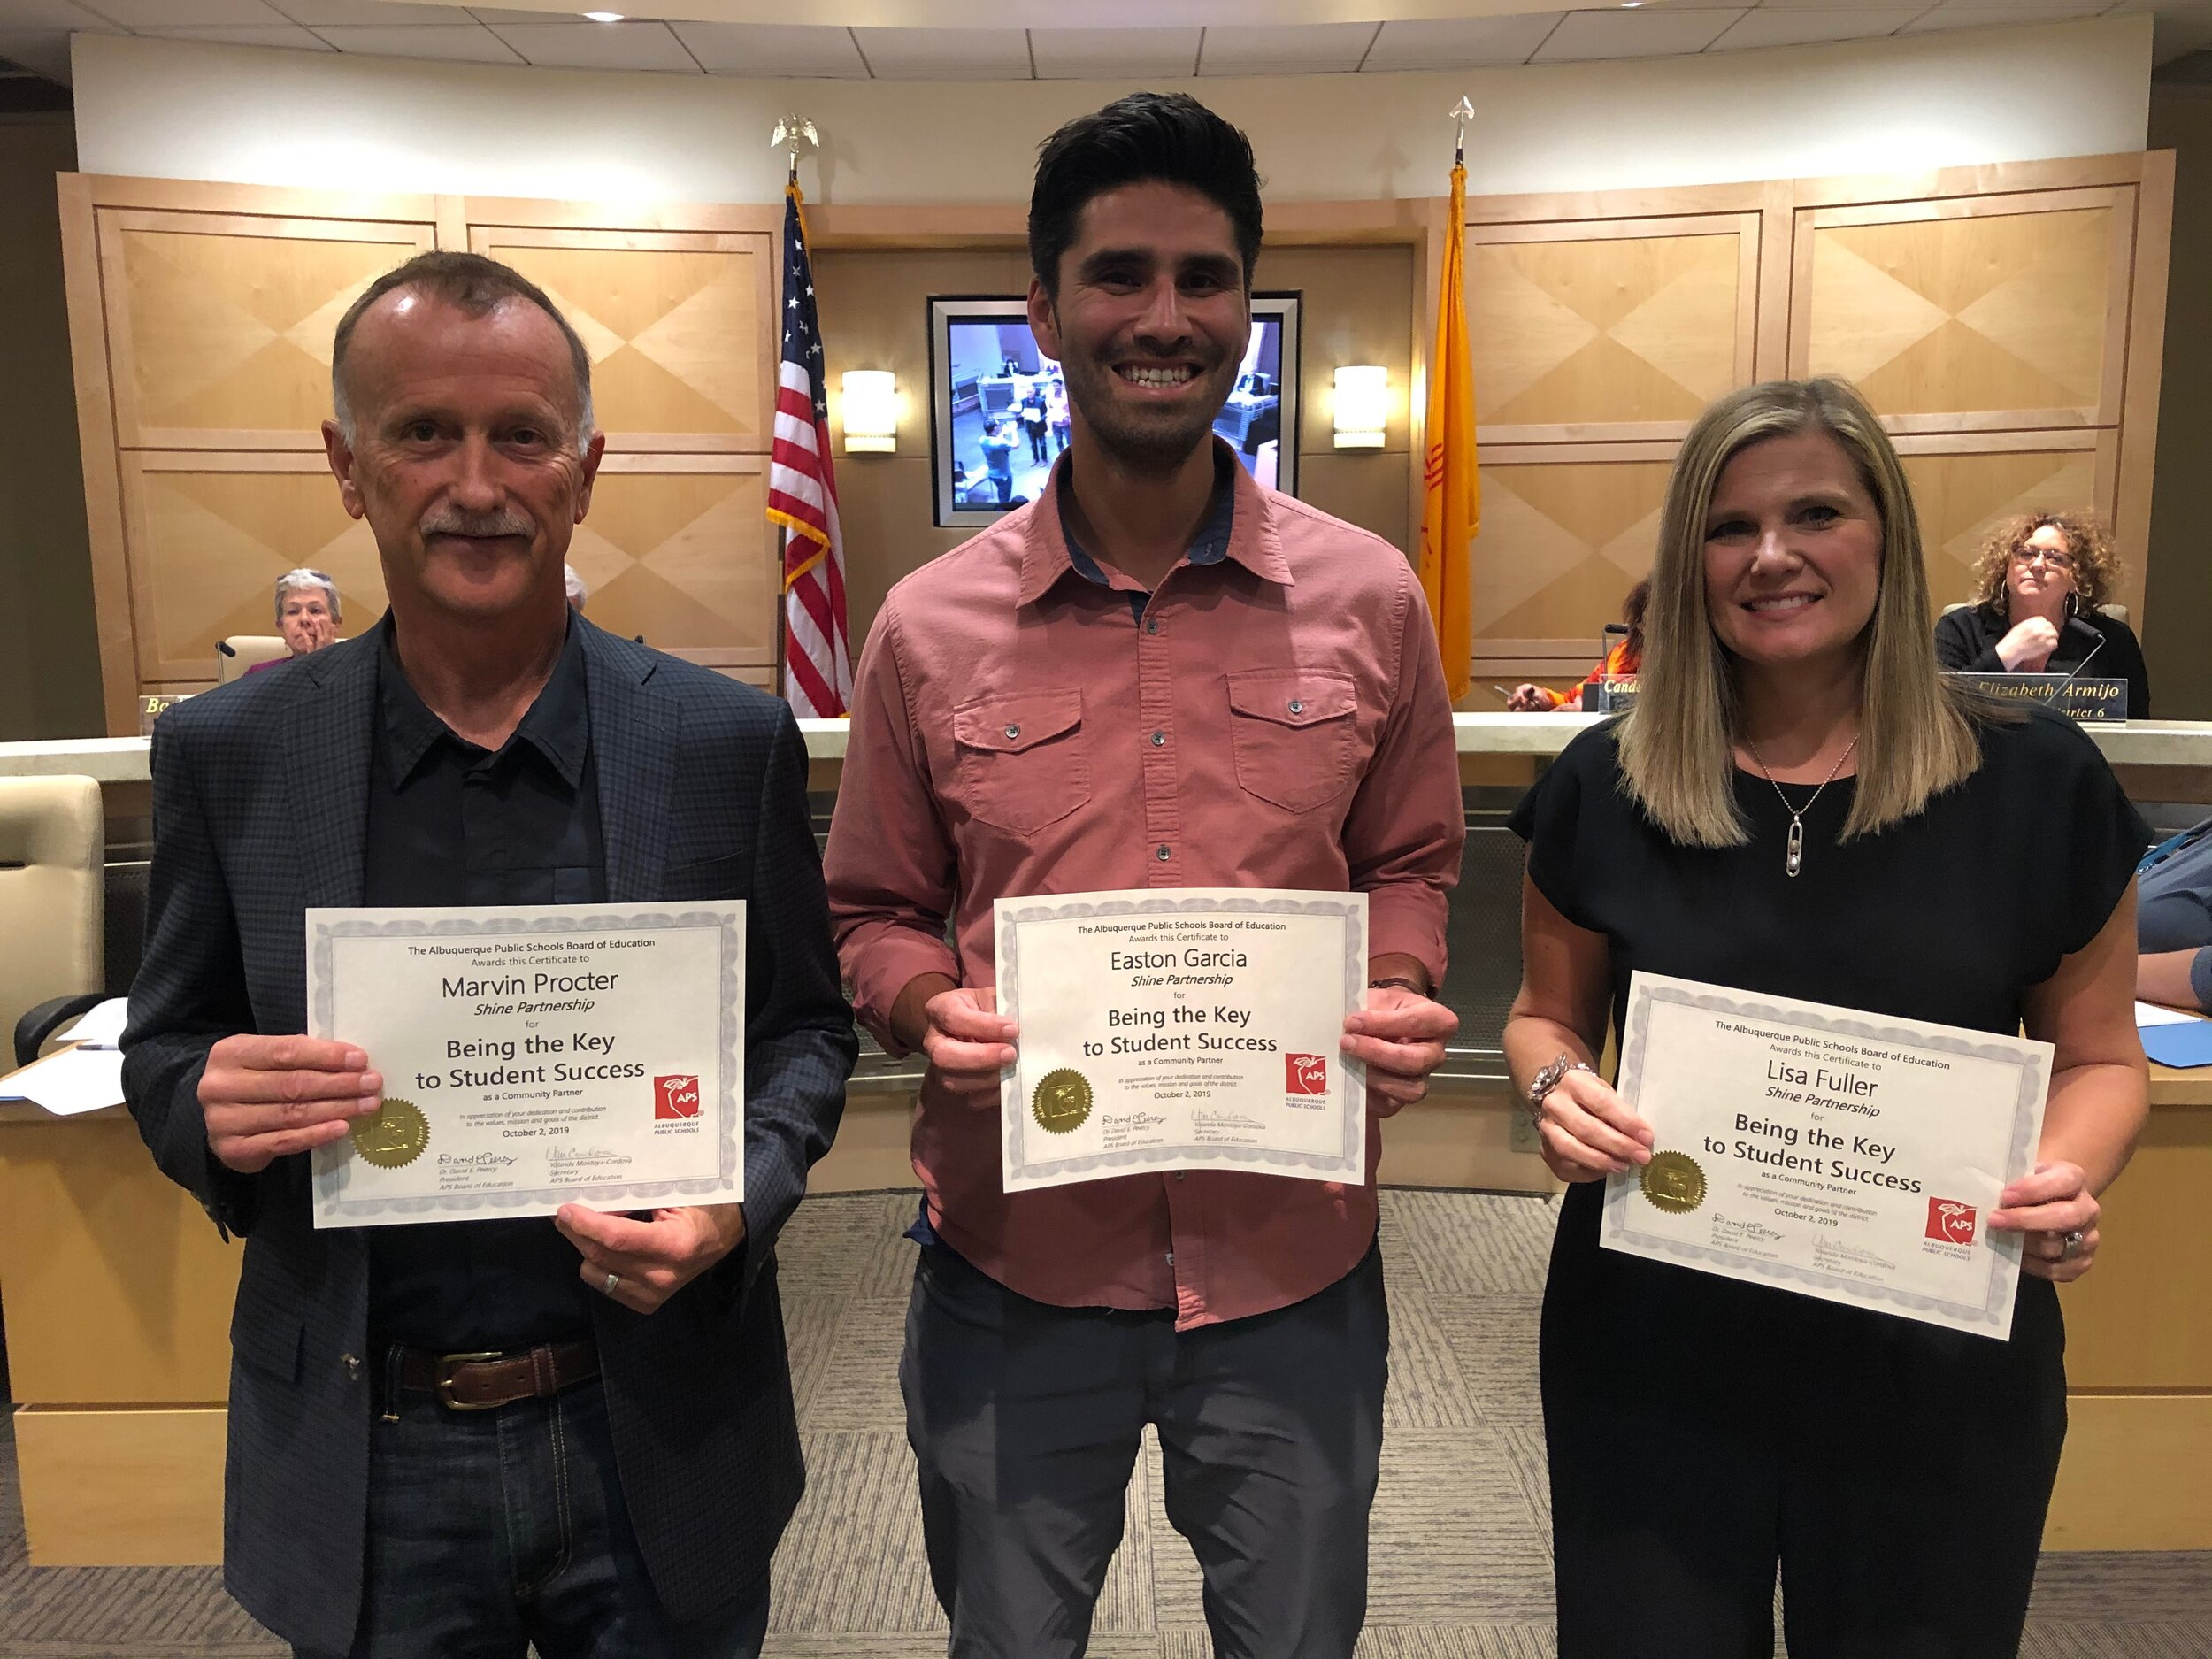 Shine Board of Directors receive recognition from APS School Board. (Pictured: Marvin Procter, Easton Garcia, Lisa Fuller)